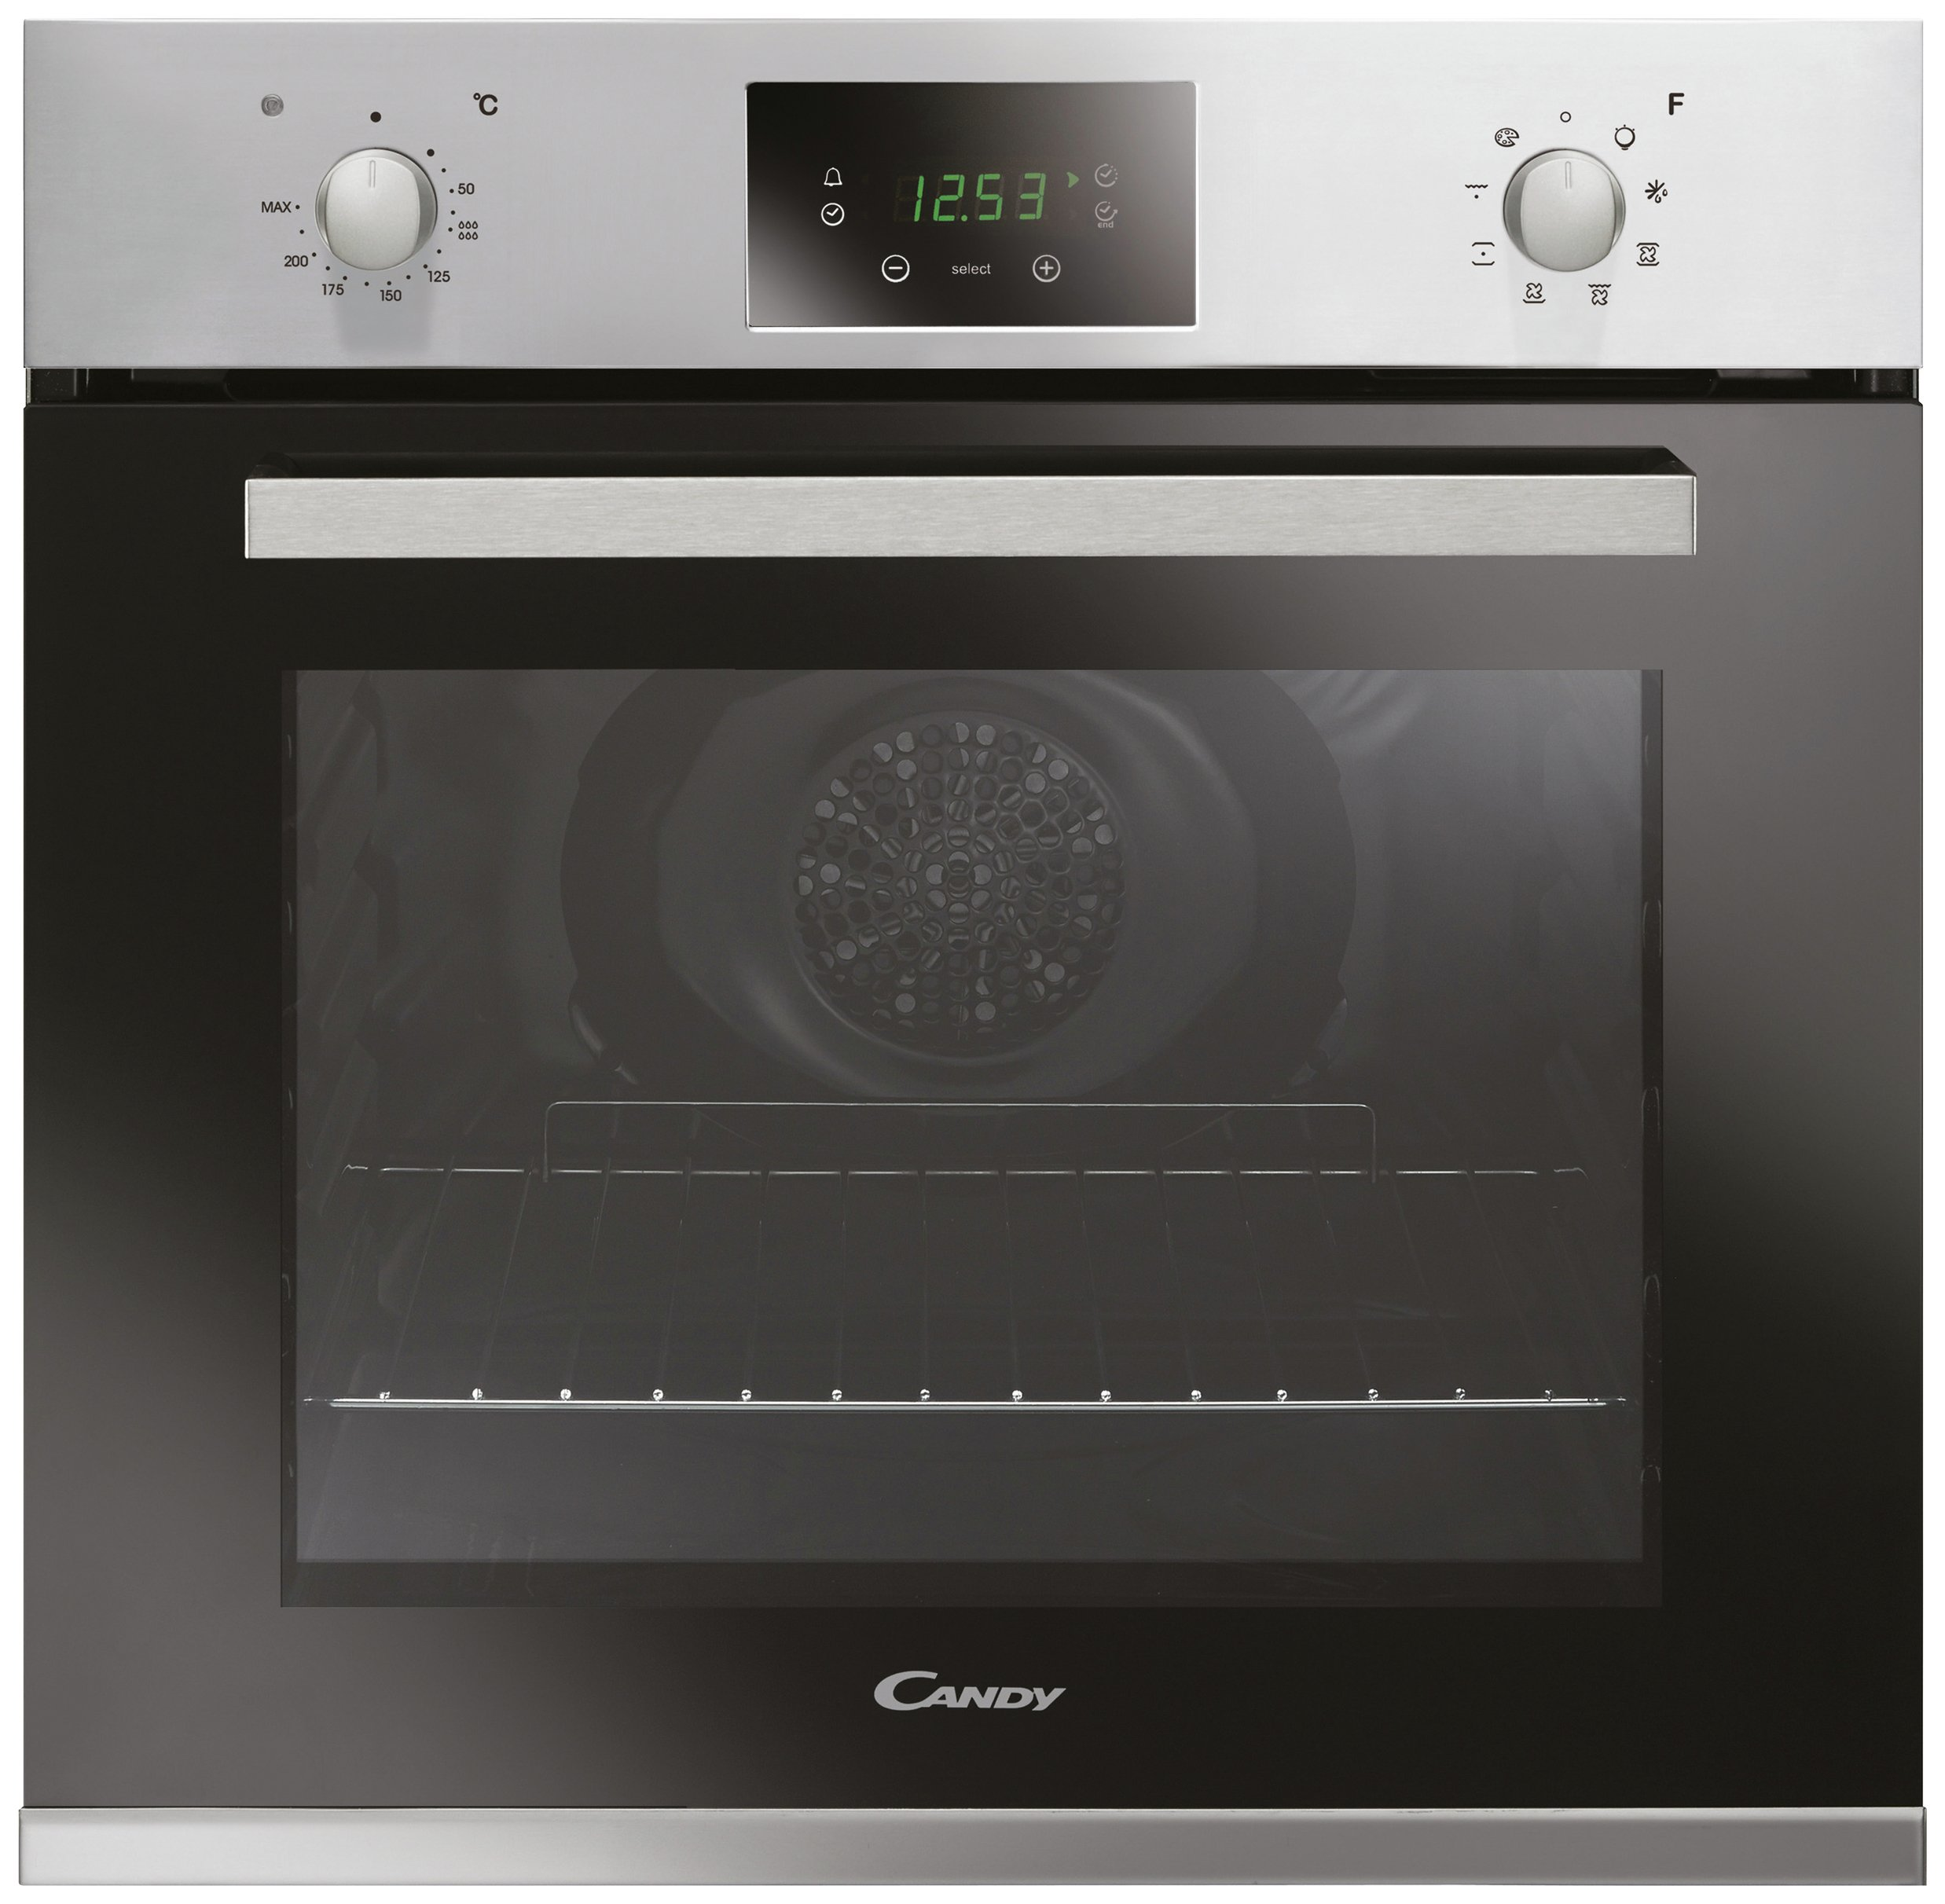 Hoover FPE6071 Electric Oven - Stainless Steel.